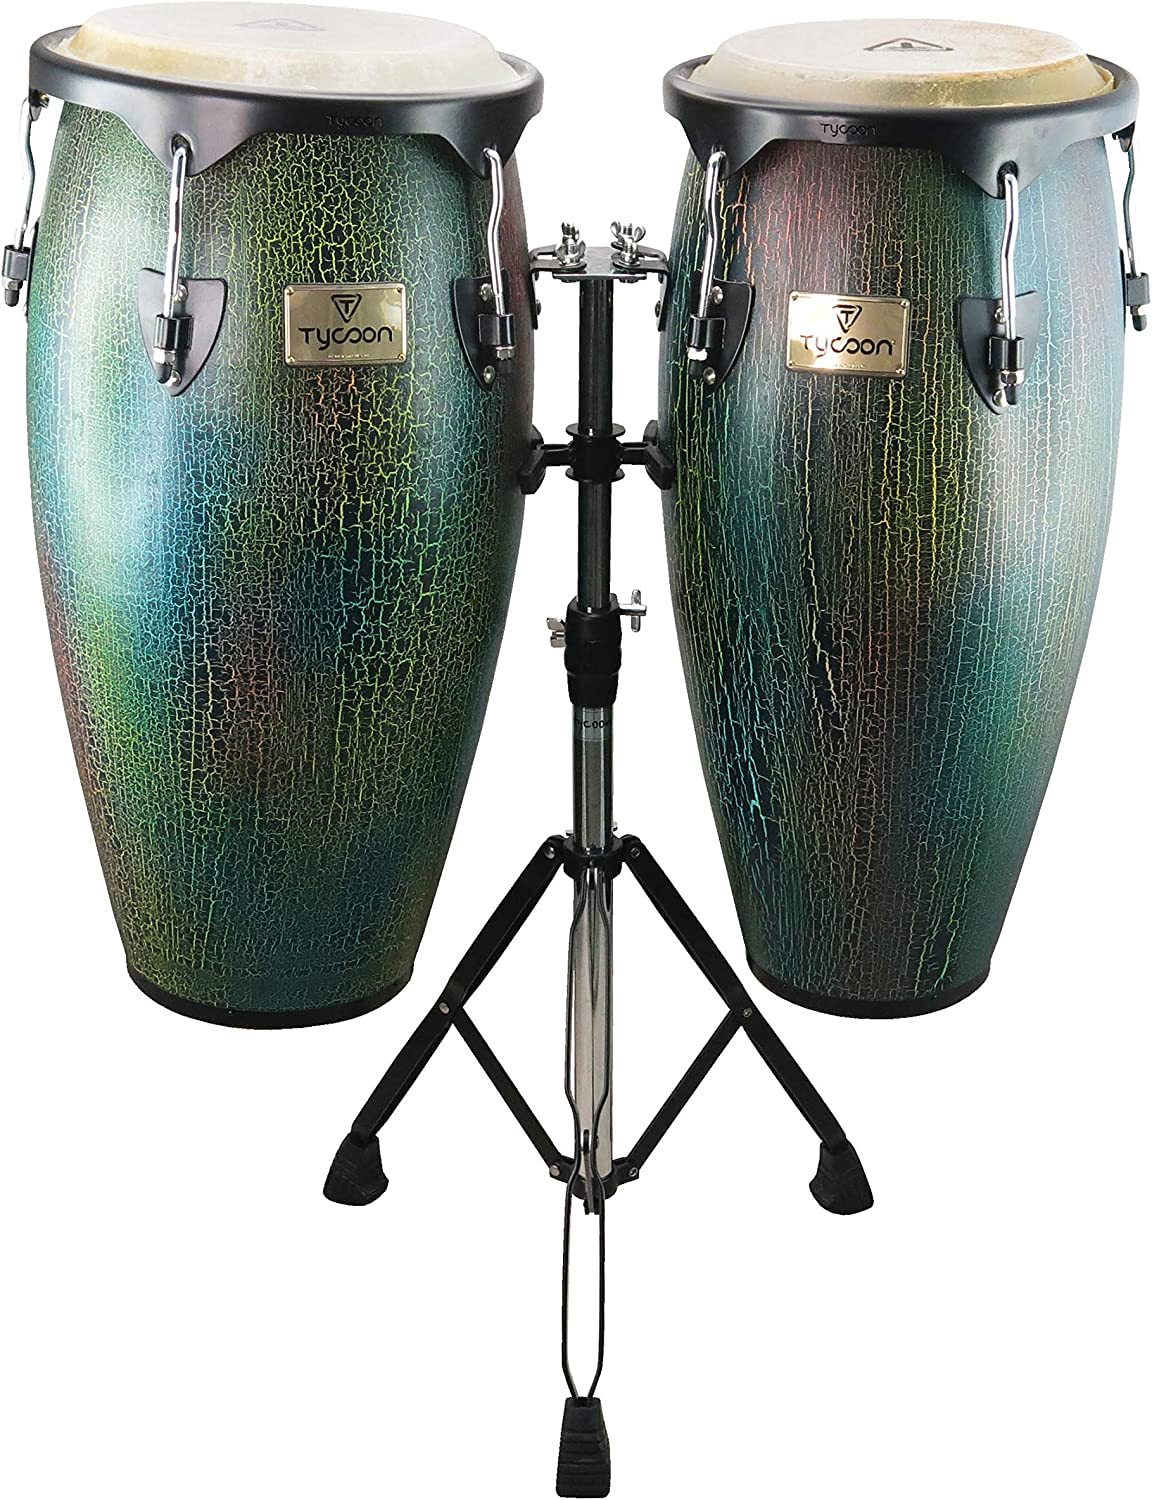 NEW TYCOON PRO QUALITY SUPREMO NATURAL WOOD LATIN BONGO PERCUSSION DRUMS SET